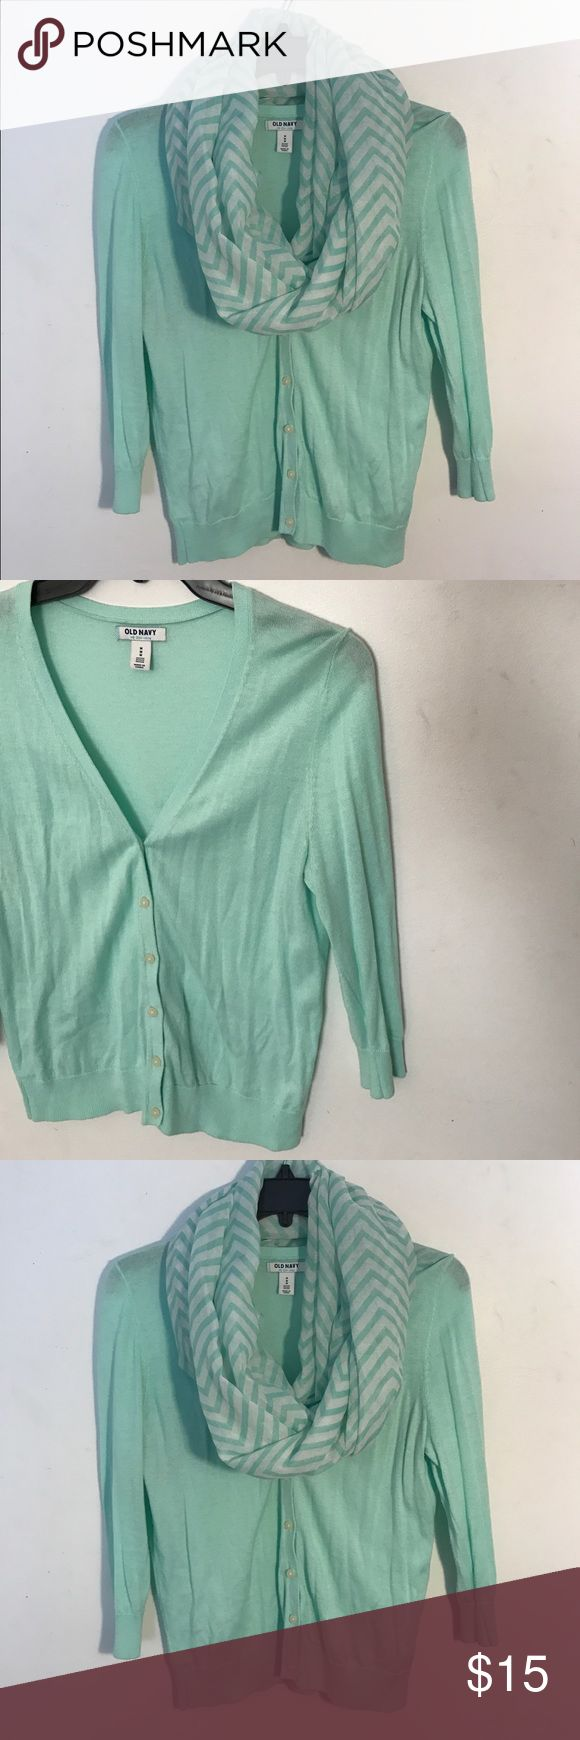 ♡ Scarf & Cardigan ♡ Beautiful old navy mint color button up cardigan with a matching infinity scarf included! 3/4 sleeves, size petite medium. Only worn once! Bundle and save! Old Navy Sweaters Cardigans